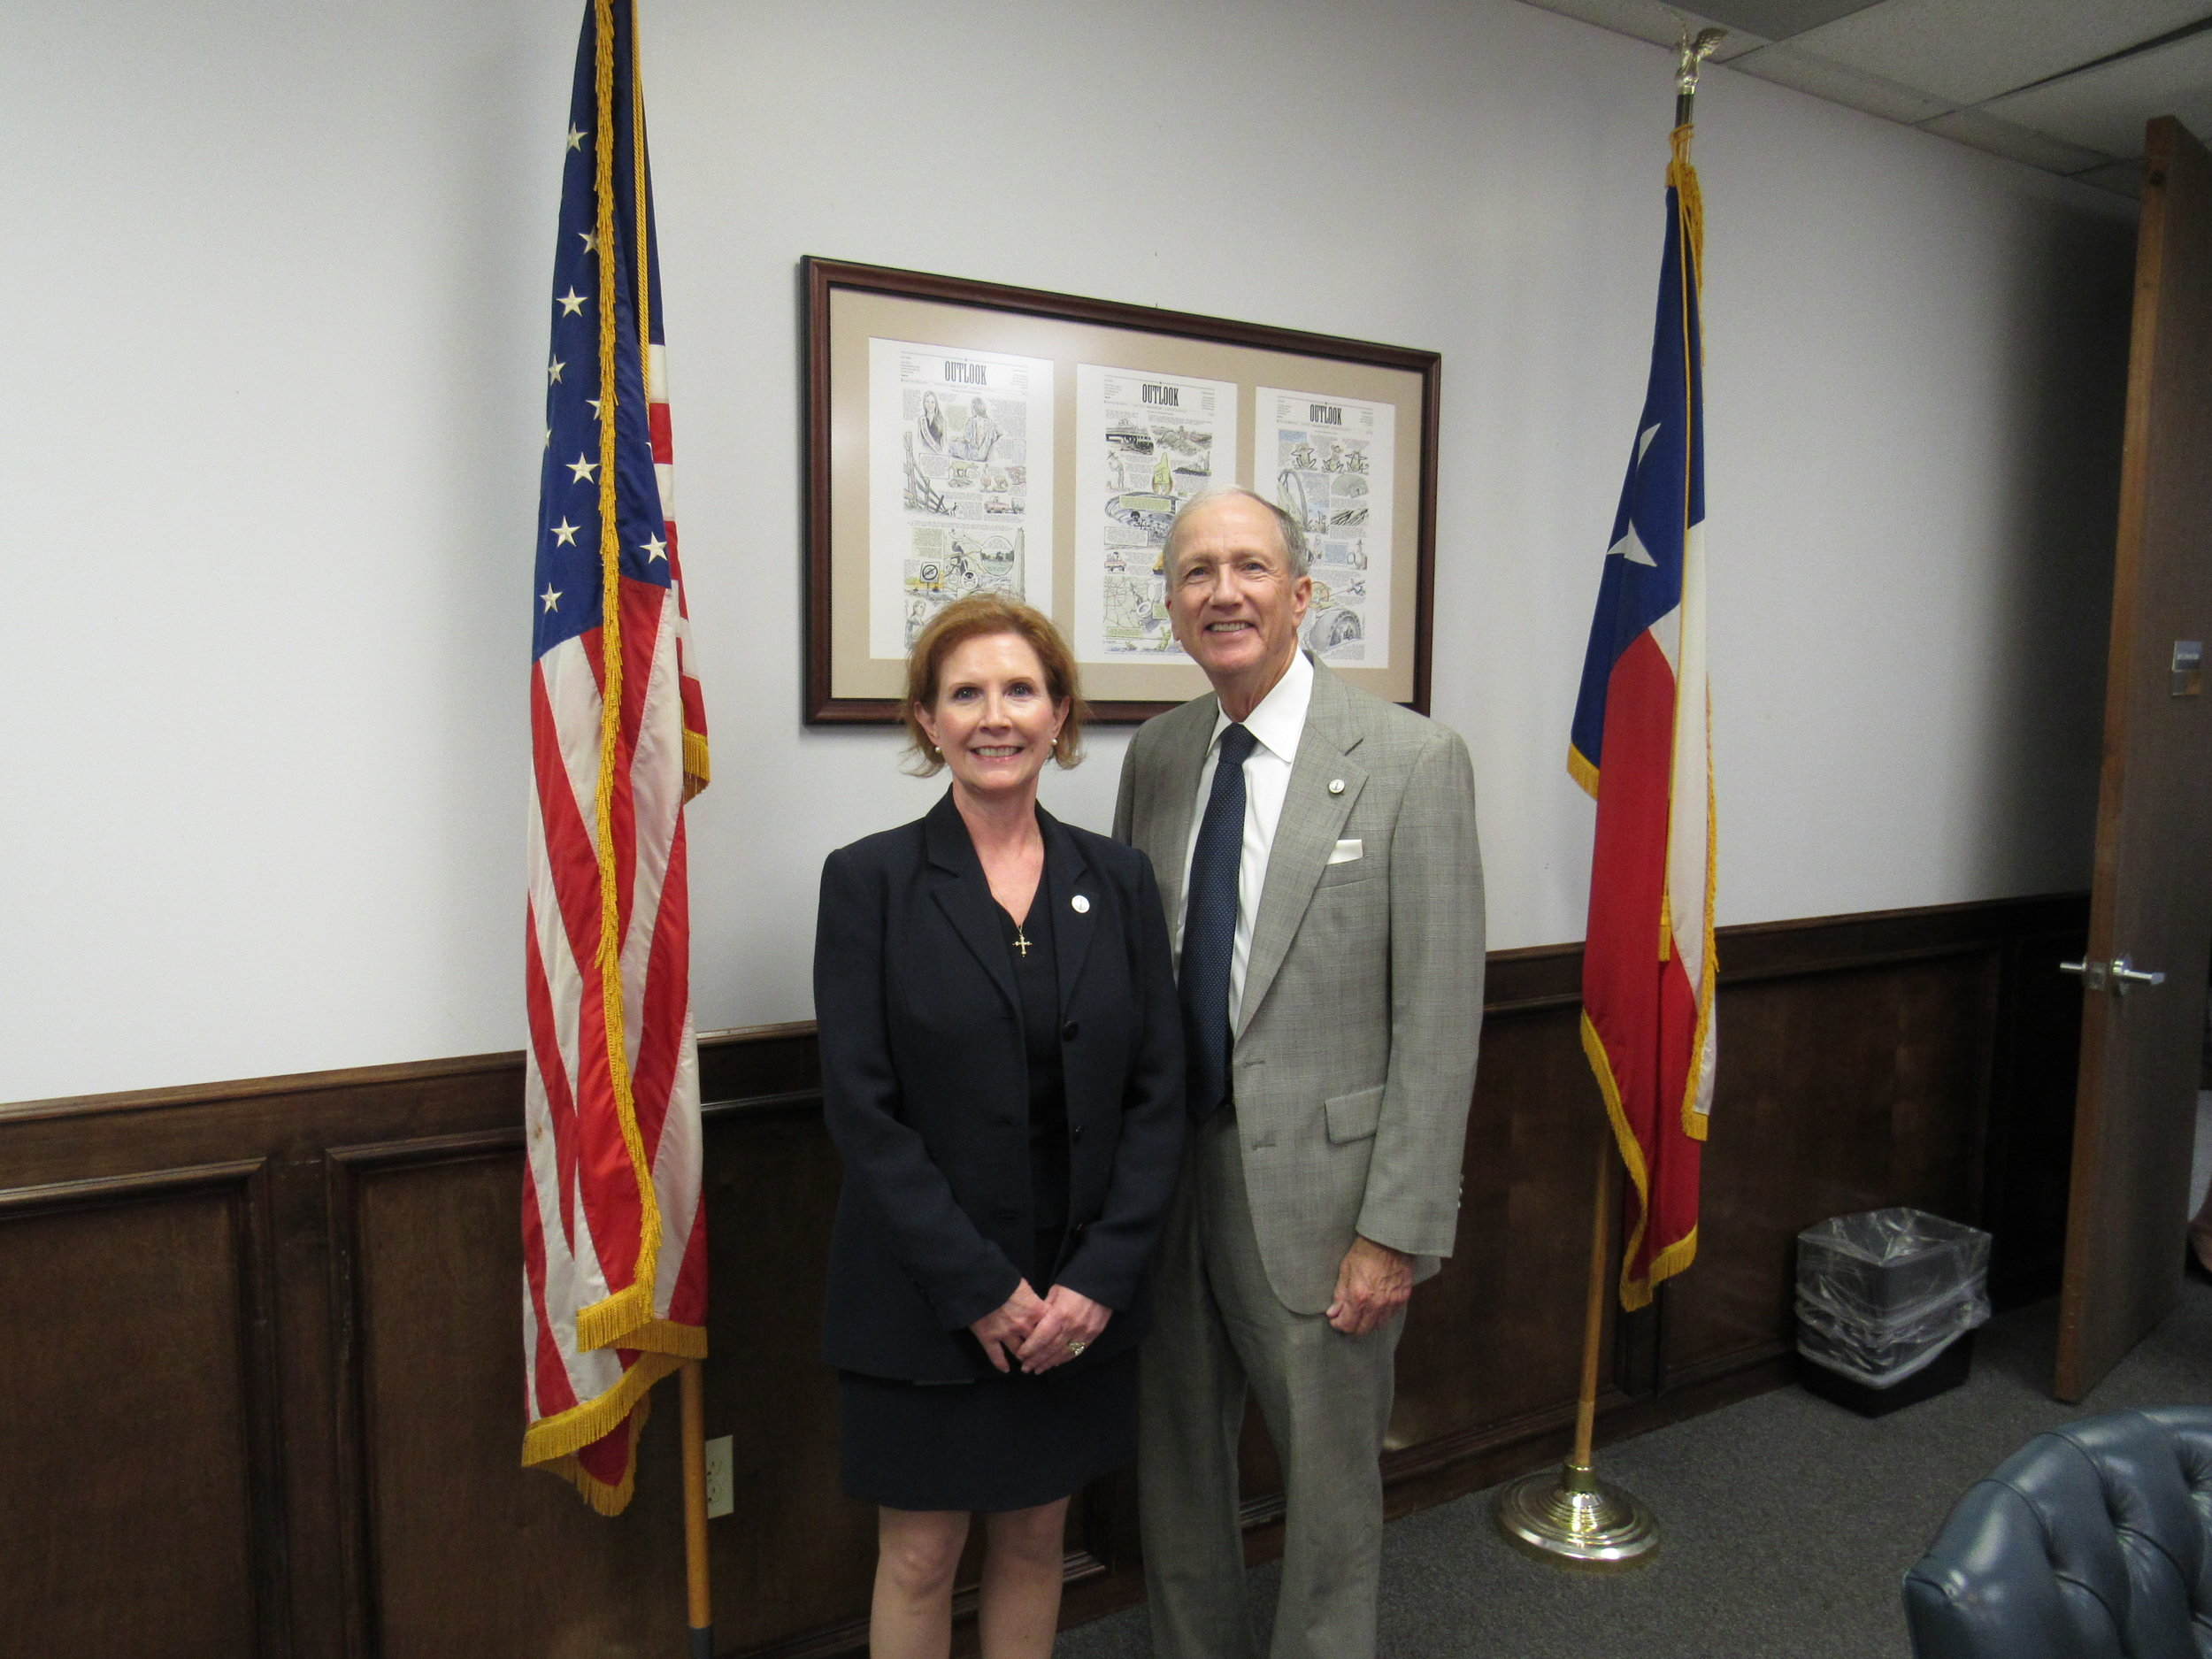 Assistant County Attorney Bobbie K. Risner and County Attorney Vince Ryan.